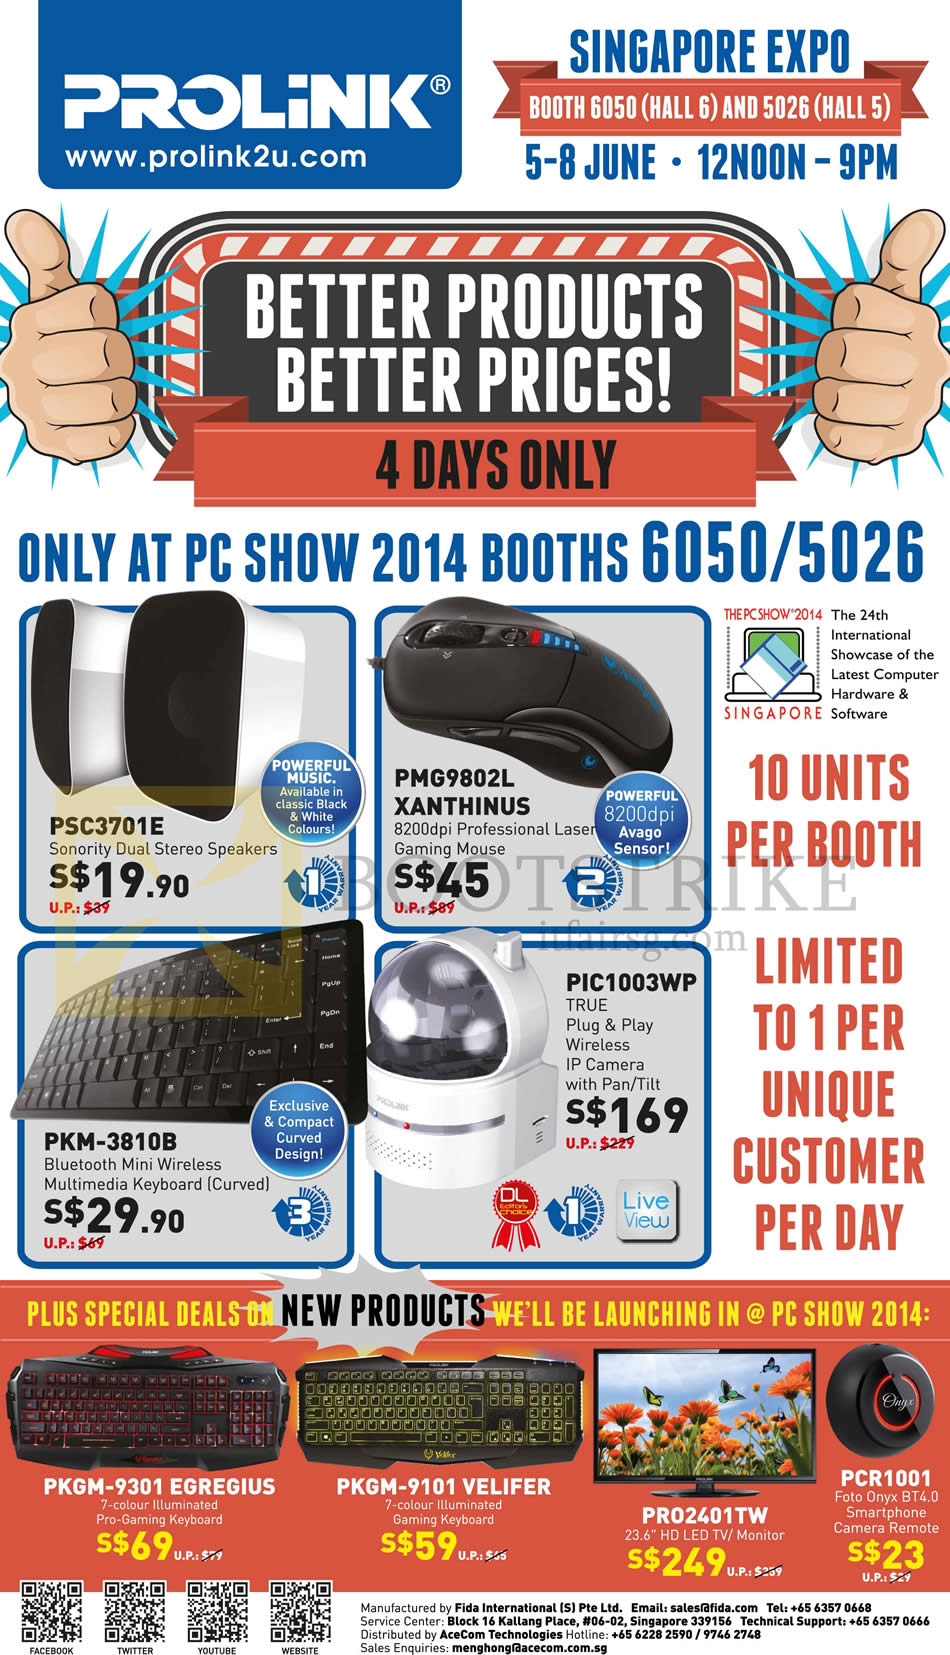 PC SHOW 2014 price list image brochure of Prolink Stereo Speakers, Gaming Mouse, Bluetooth Keyboard, IP Camera IPCam, Keyboards